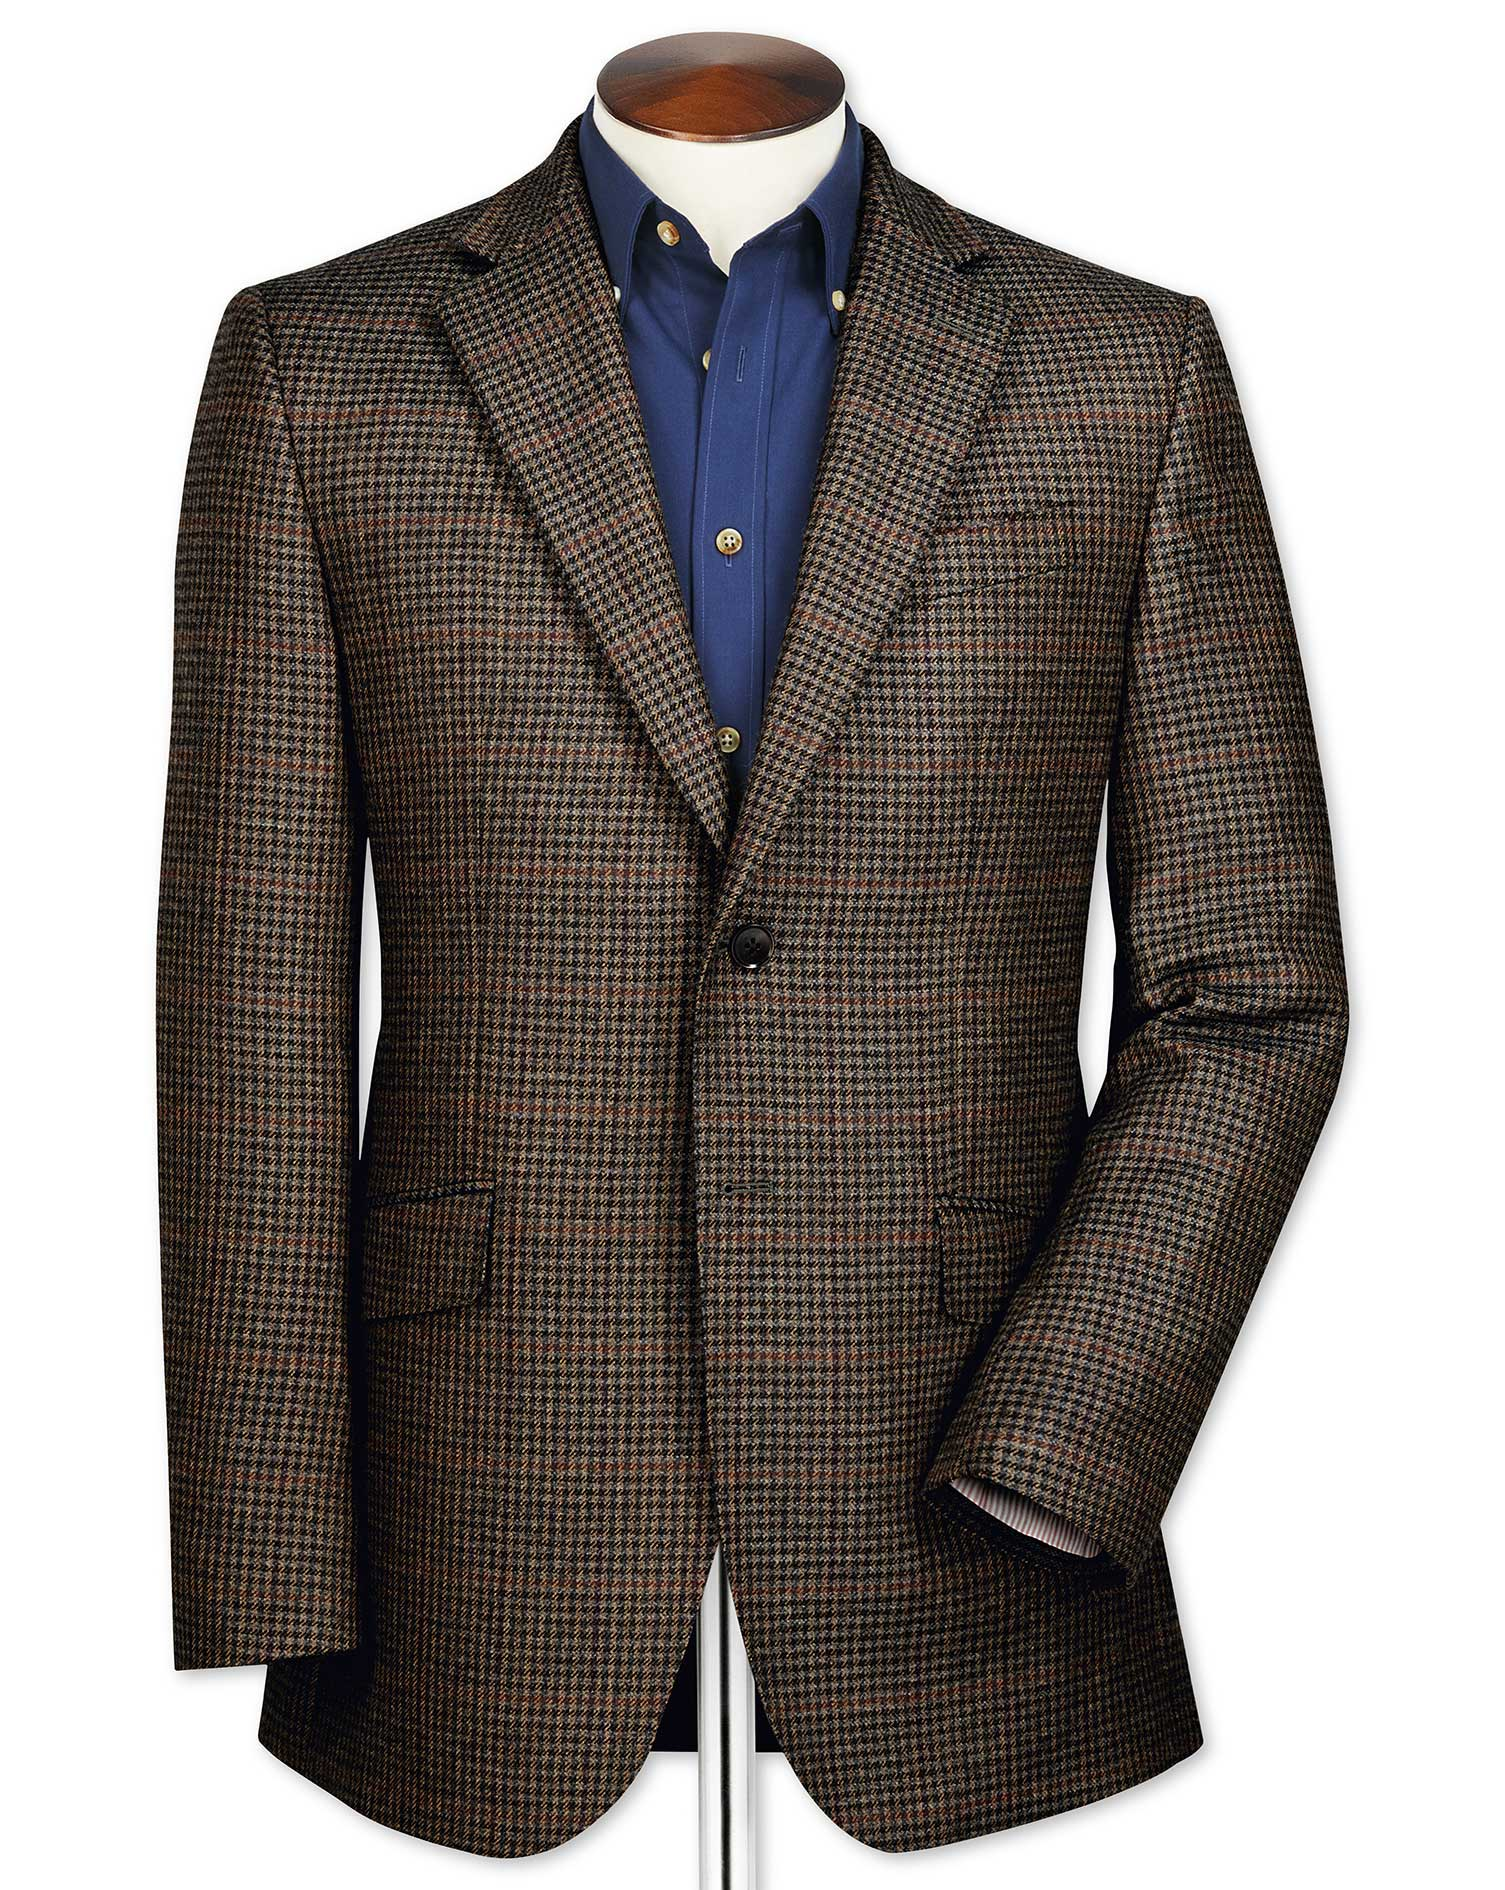 Slim Fit Brown Checkered Lambswool Wool Jacket Size 40 Long by Charles Tyrwhitt